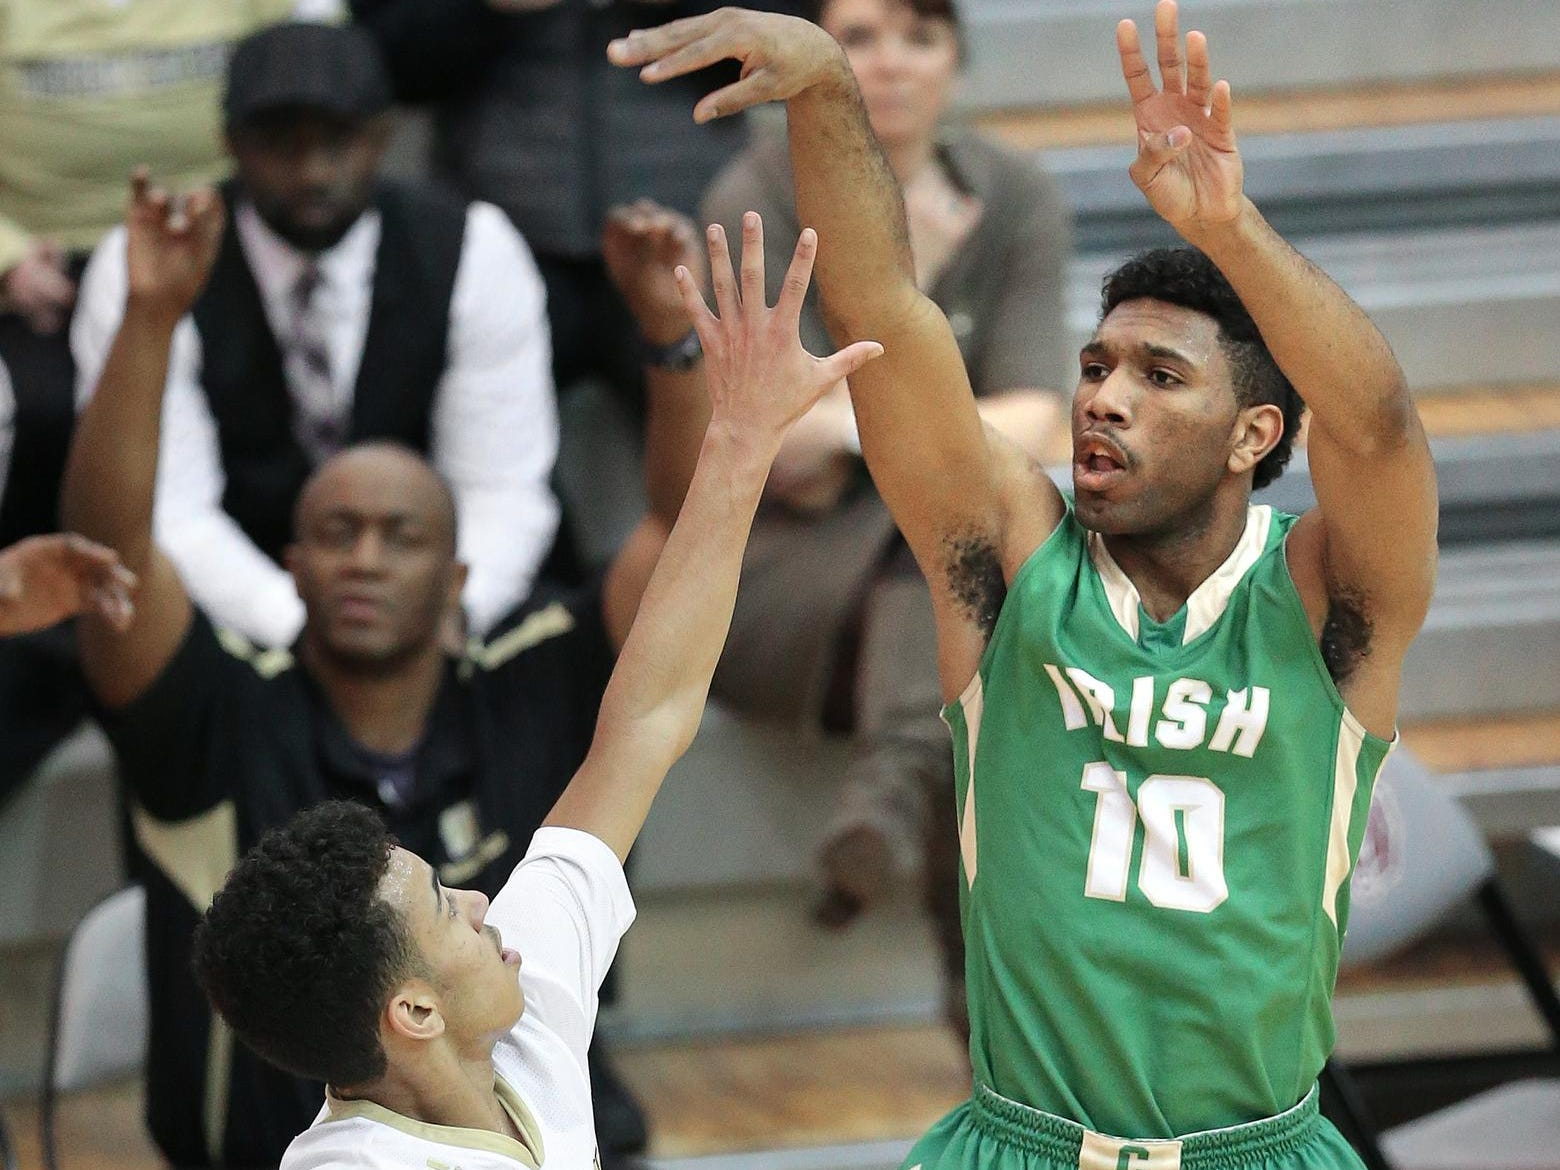 Cathedral's Eron Gordon sinks one of his 31 points over Warren Central's Bishop Smith during the IHSAA Boys Basketball Sectional #10 held at Lawrence Central High School on Tuesday, Mar. 3, 2015. Cathedral won 72-65.